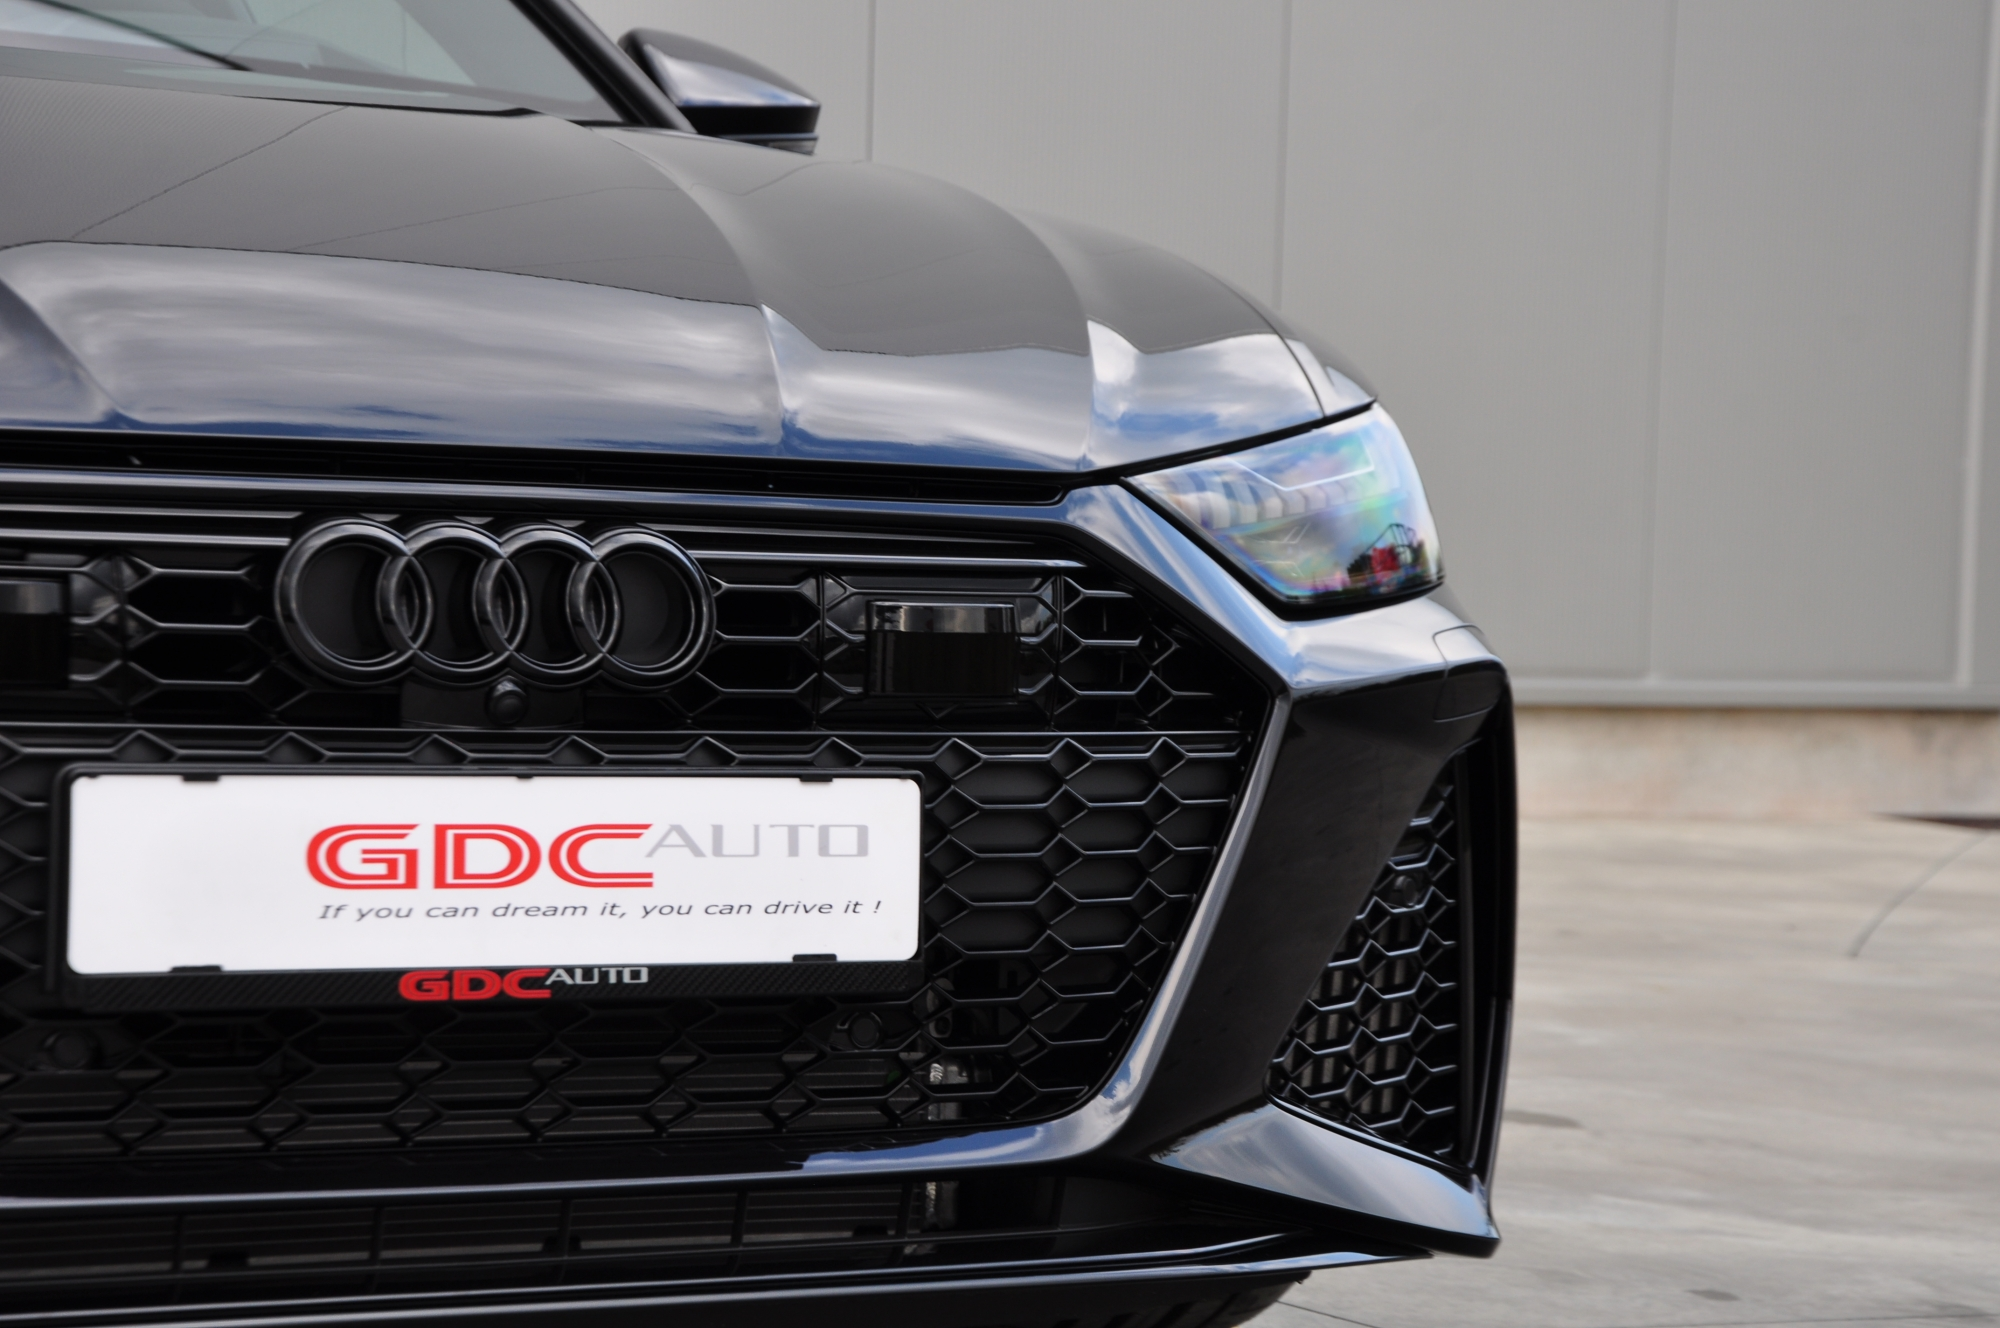 GDC Auto Audi RS6 FULL OPTION / PACK RS